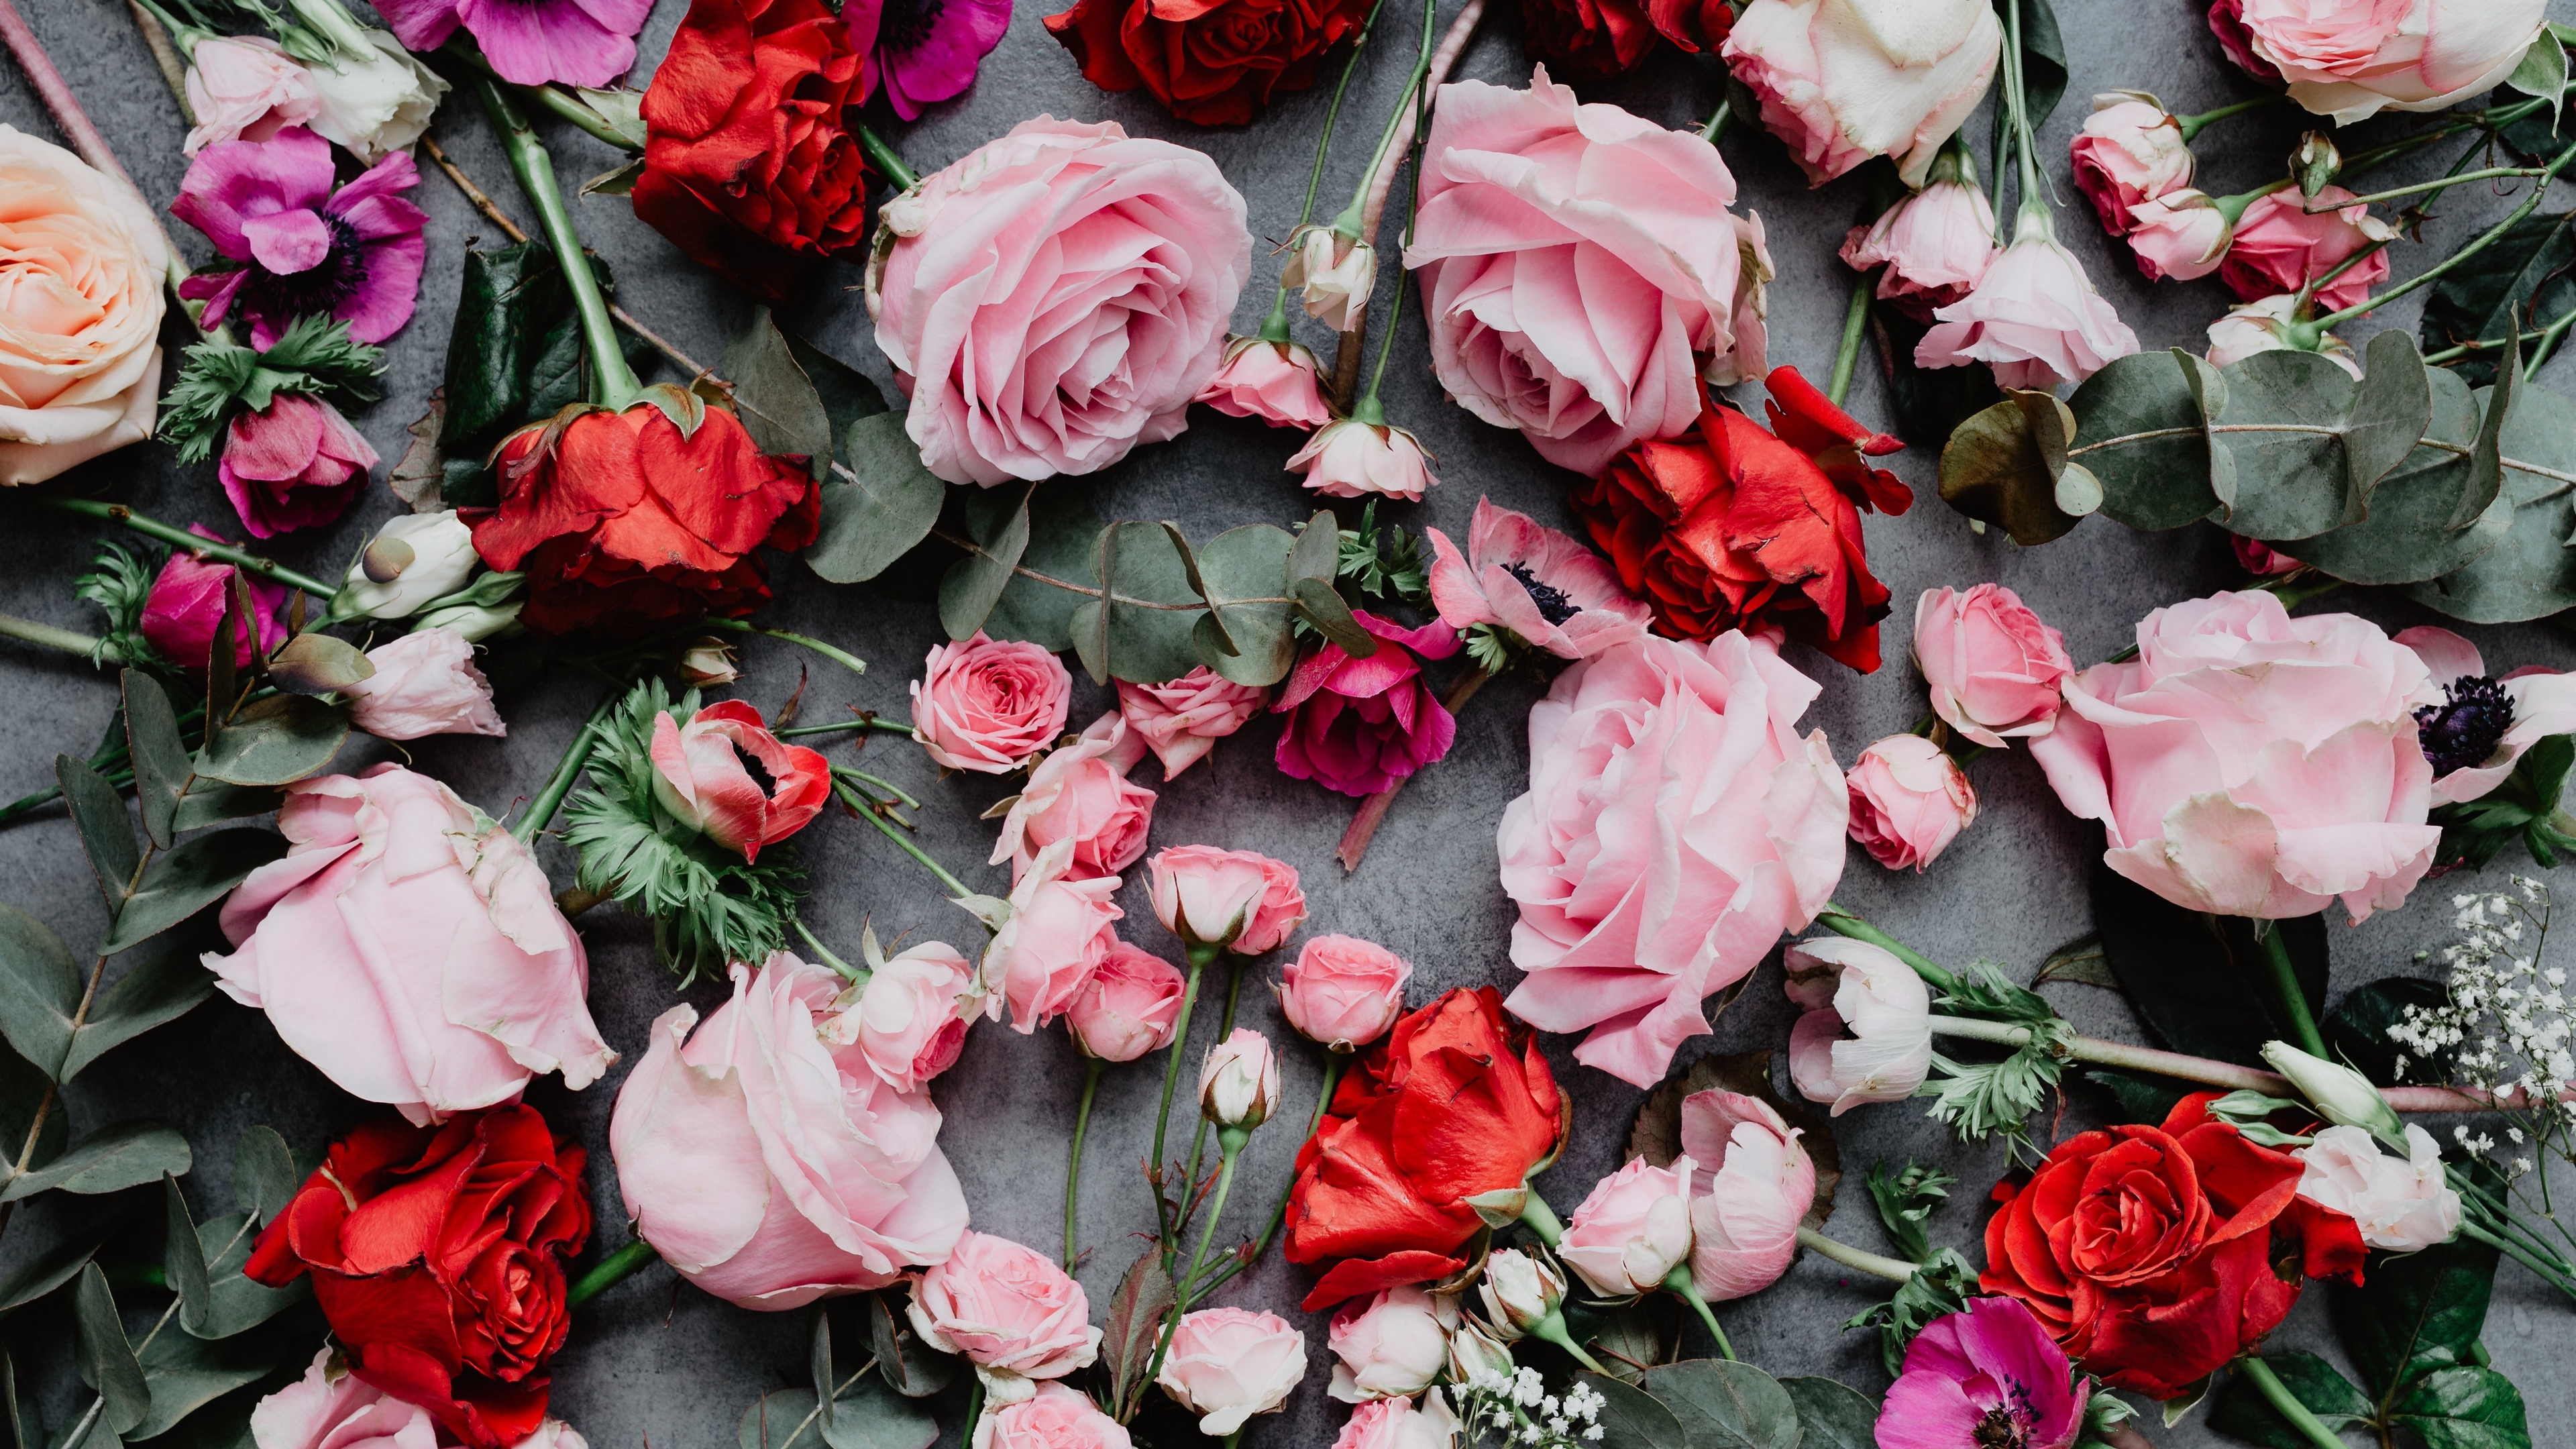 flowers roses composition red pink 4k 1540065025 - flowers, roses, composition, red, pink 4k - Roses, Flowers, composition